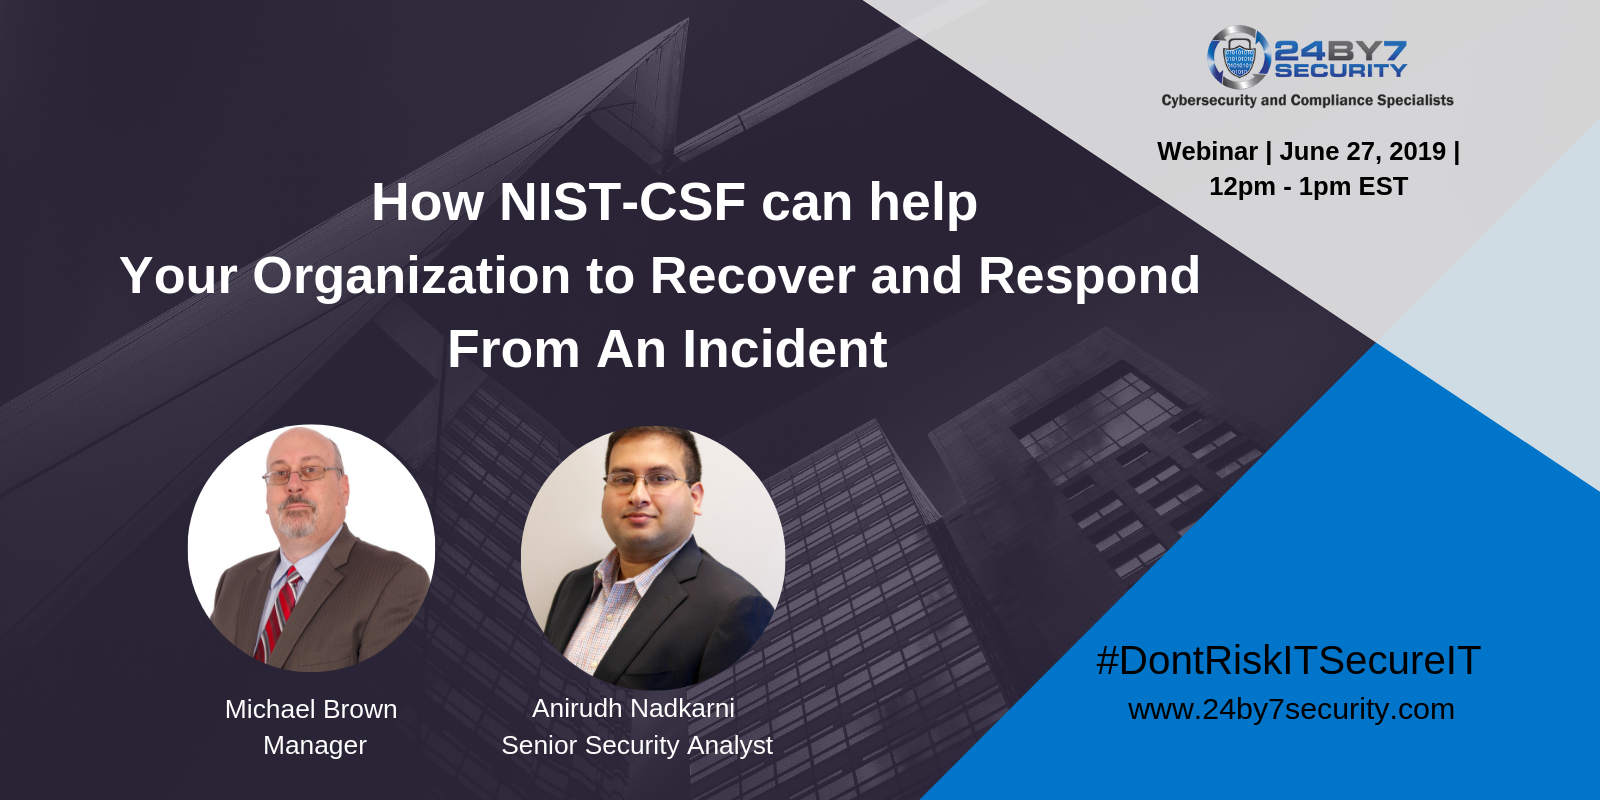 NIST-CSF Can help Organizations recover and respond Web 1600x800